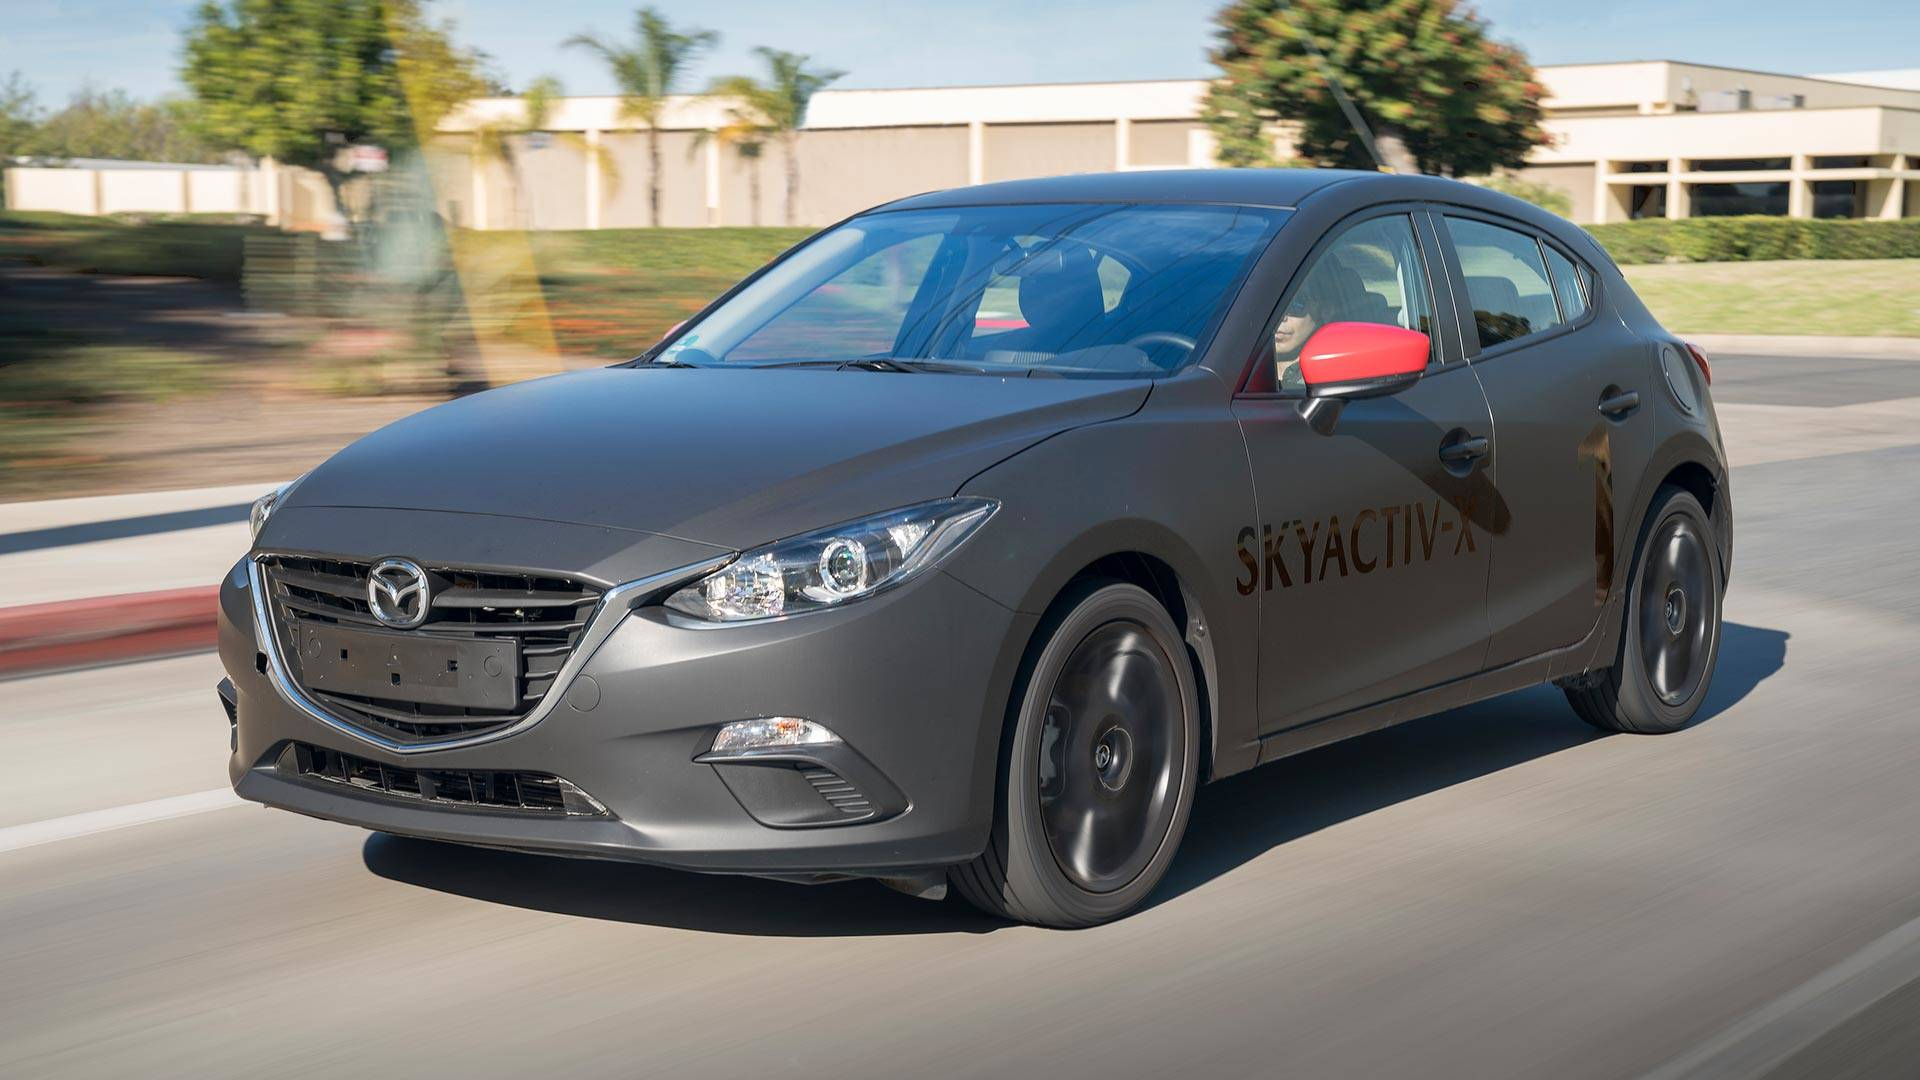 Mazda SkyActiv-X Prototype First Drive: The Future Of Gas